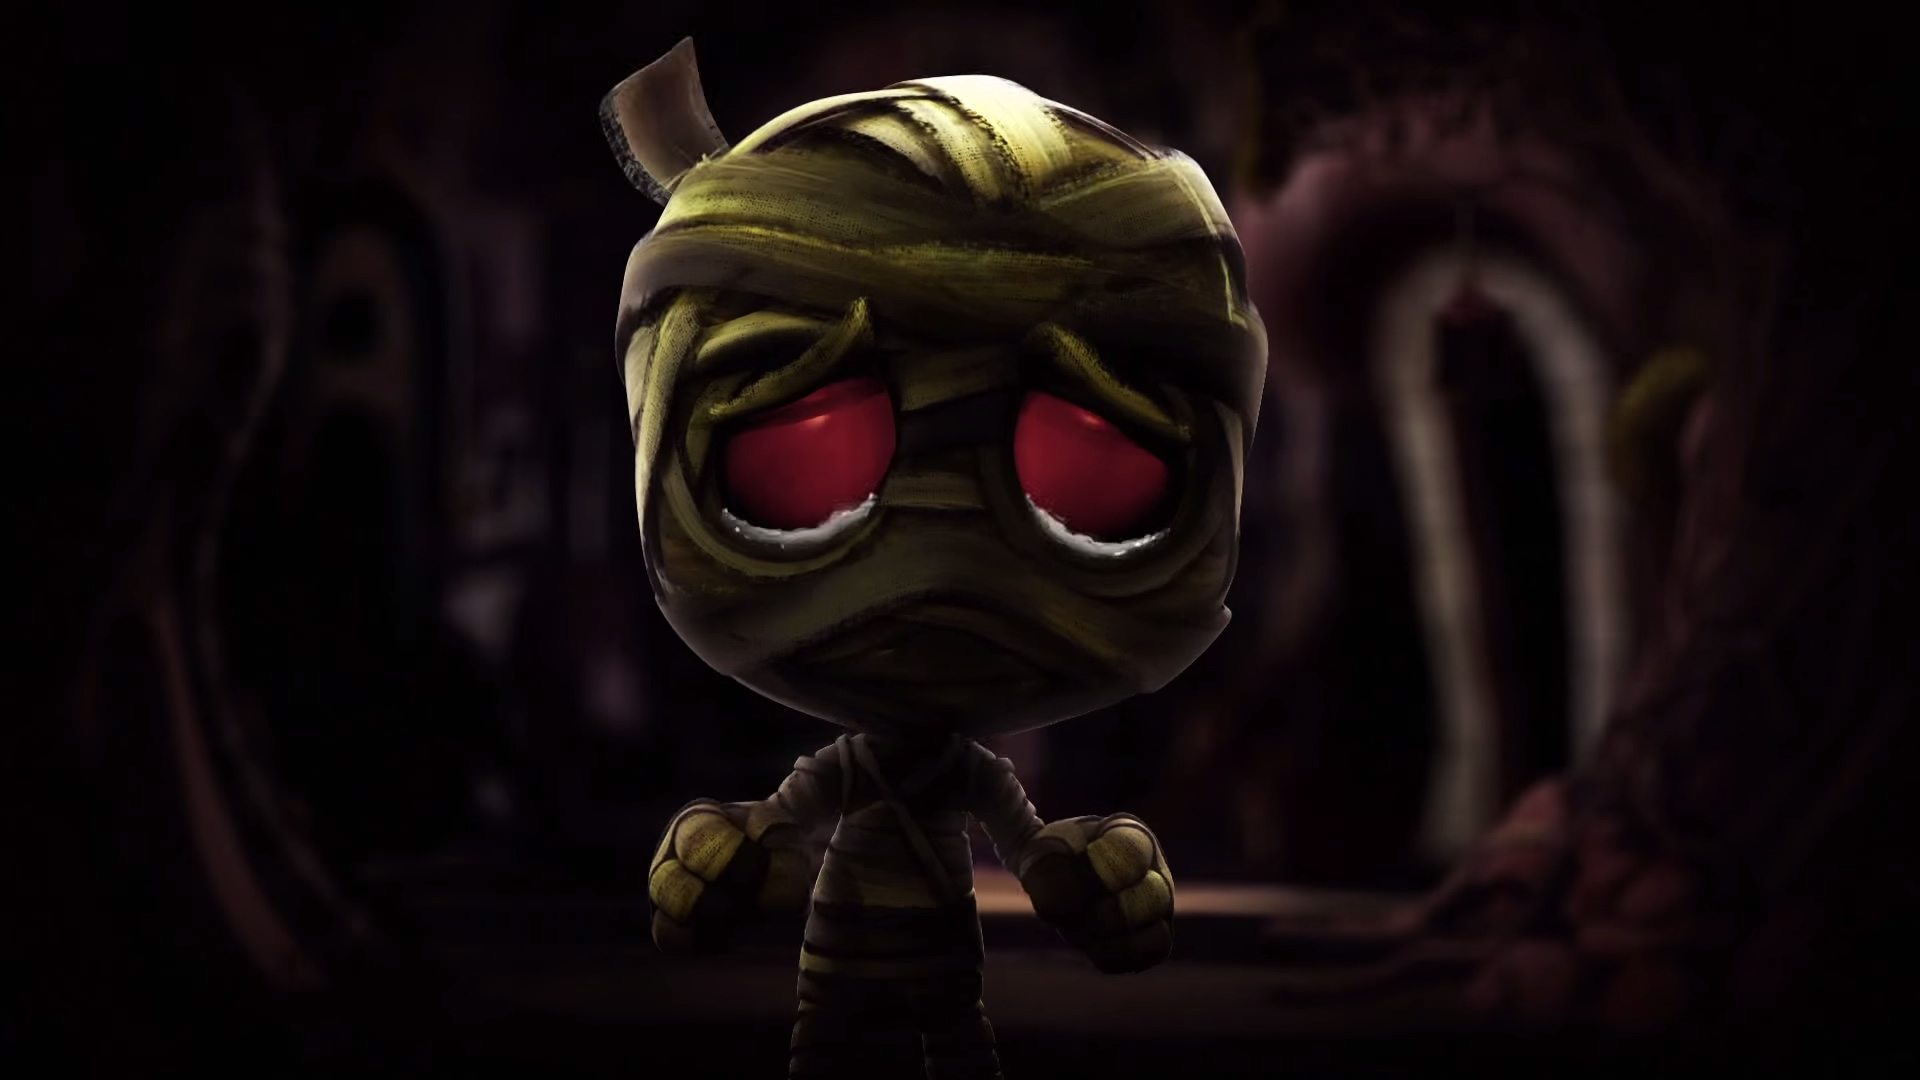 curse of the sad mummy 04 league of legends wallpapers